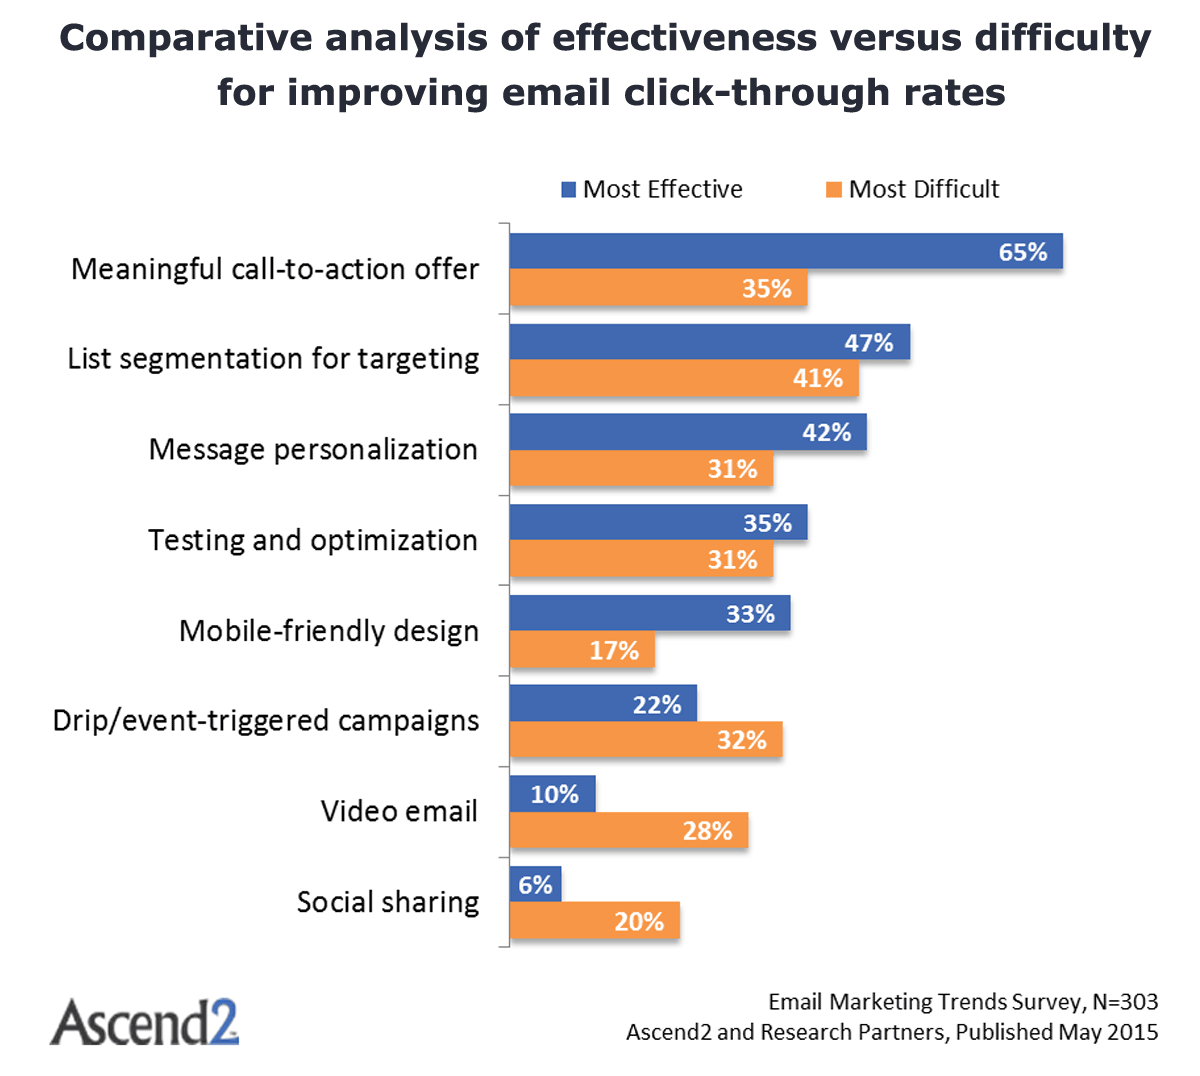 Comparative analysis of effectiveness versus difficulty for improving email click-through rates - Email Marketing Trends survey from Ascend2